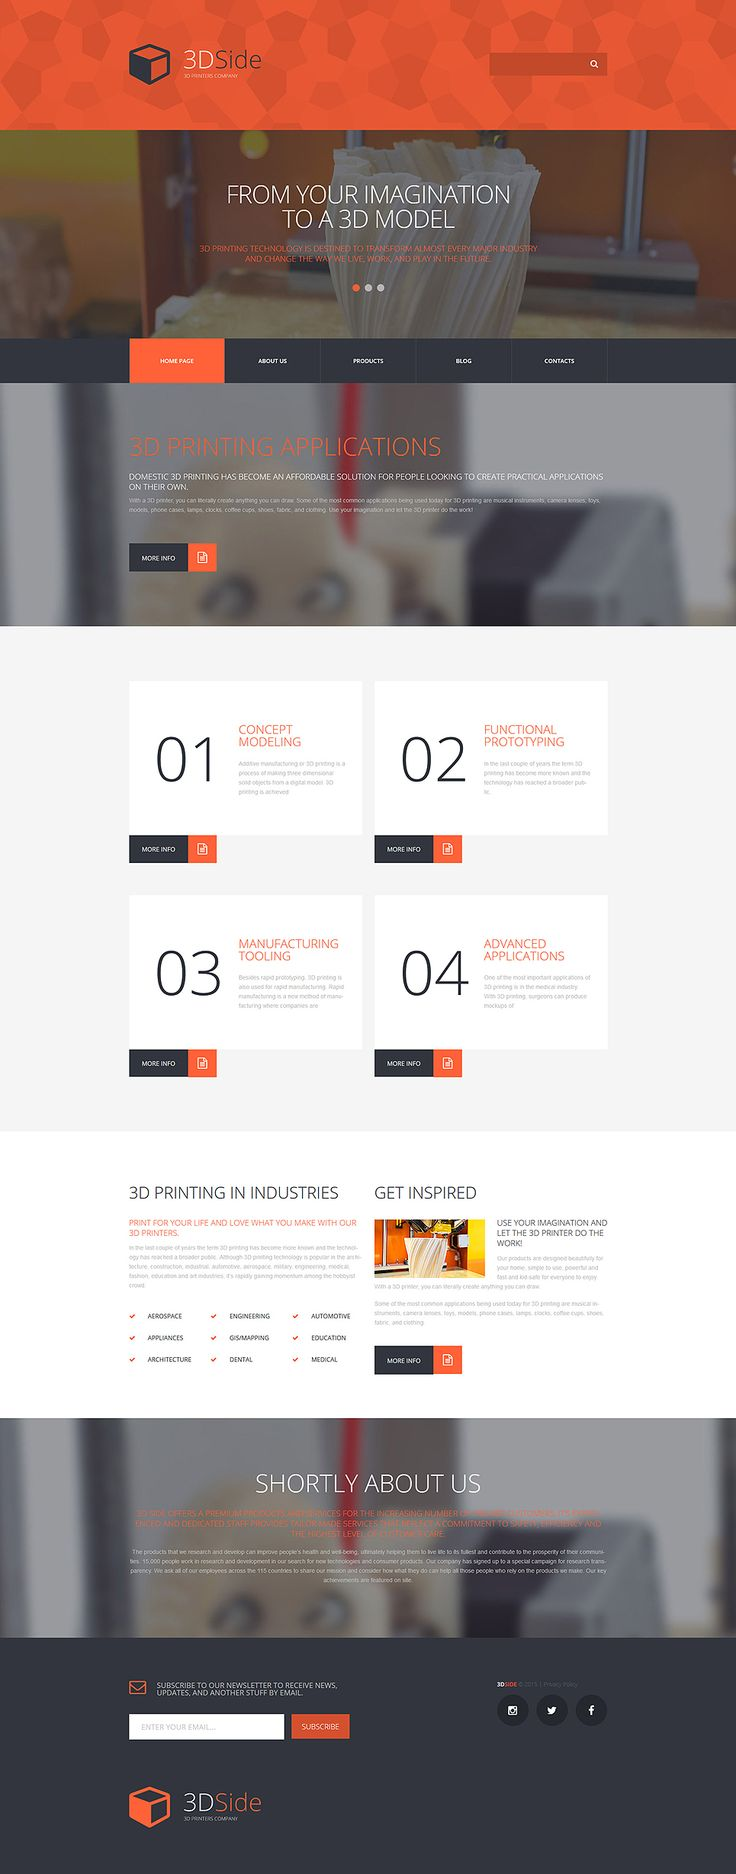 130 best images about monstroid wordpress theme on steroids on pinterest landing pages. Black Bedroom Furniture Sets. Home Design Ideas